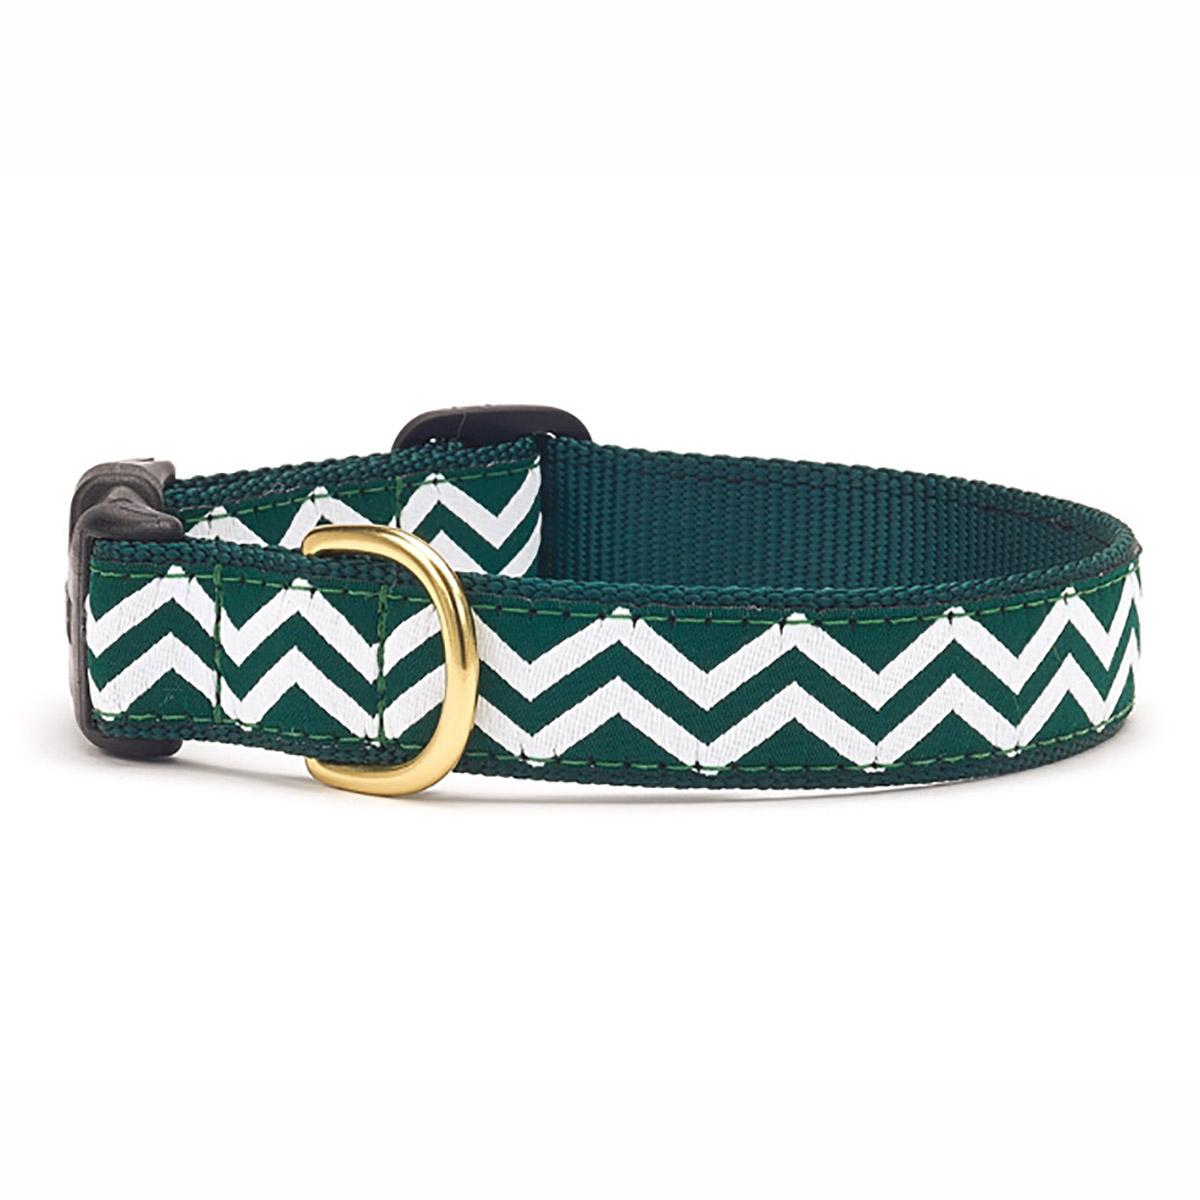 Green and White Chevron Dog Collar by Up Country